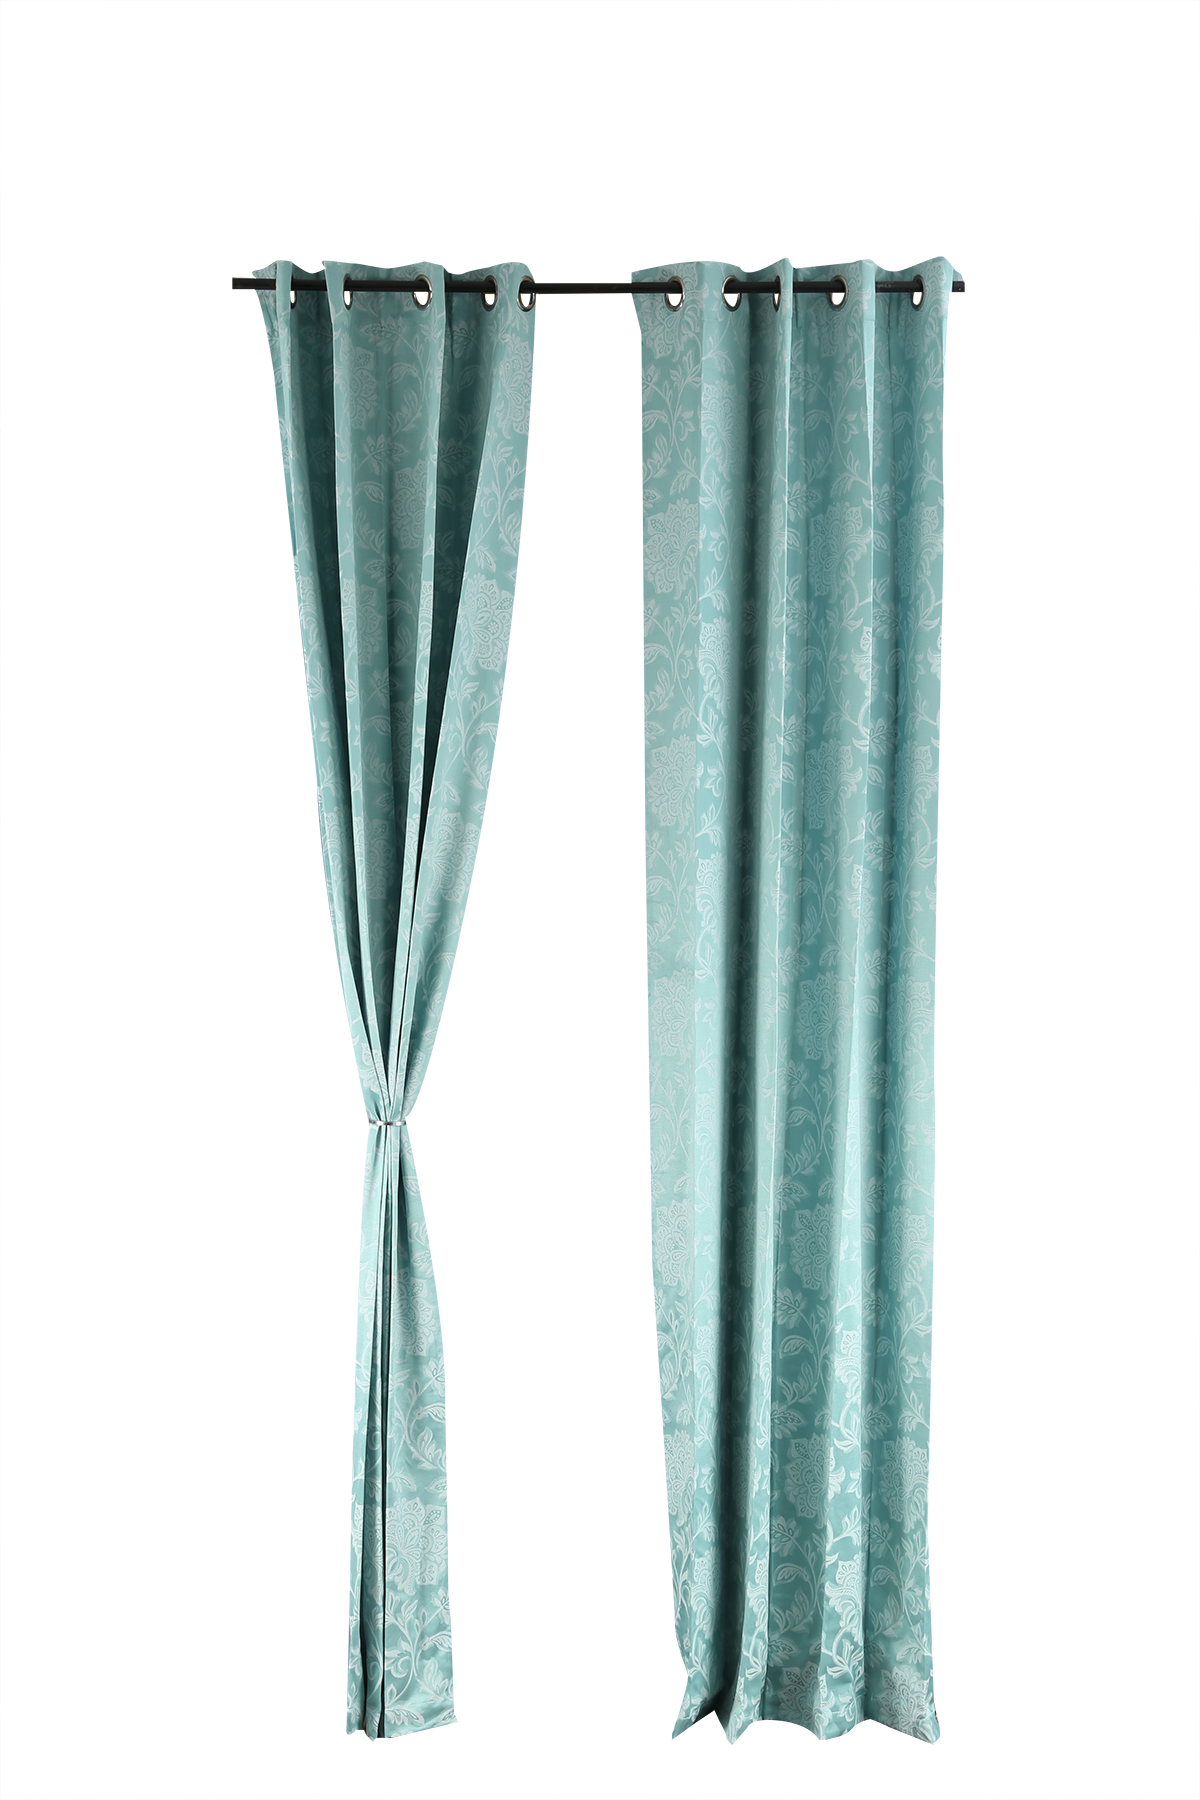 Florina Window Curtain Sea Polyester Window Curtains in Sea Green Colour by Living Essence